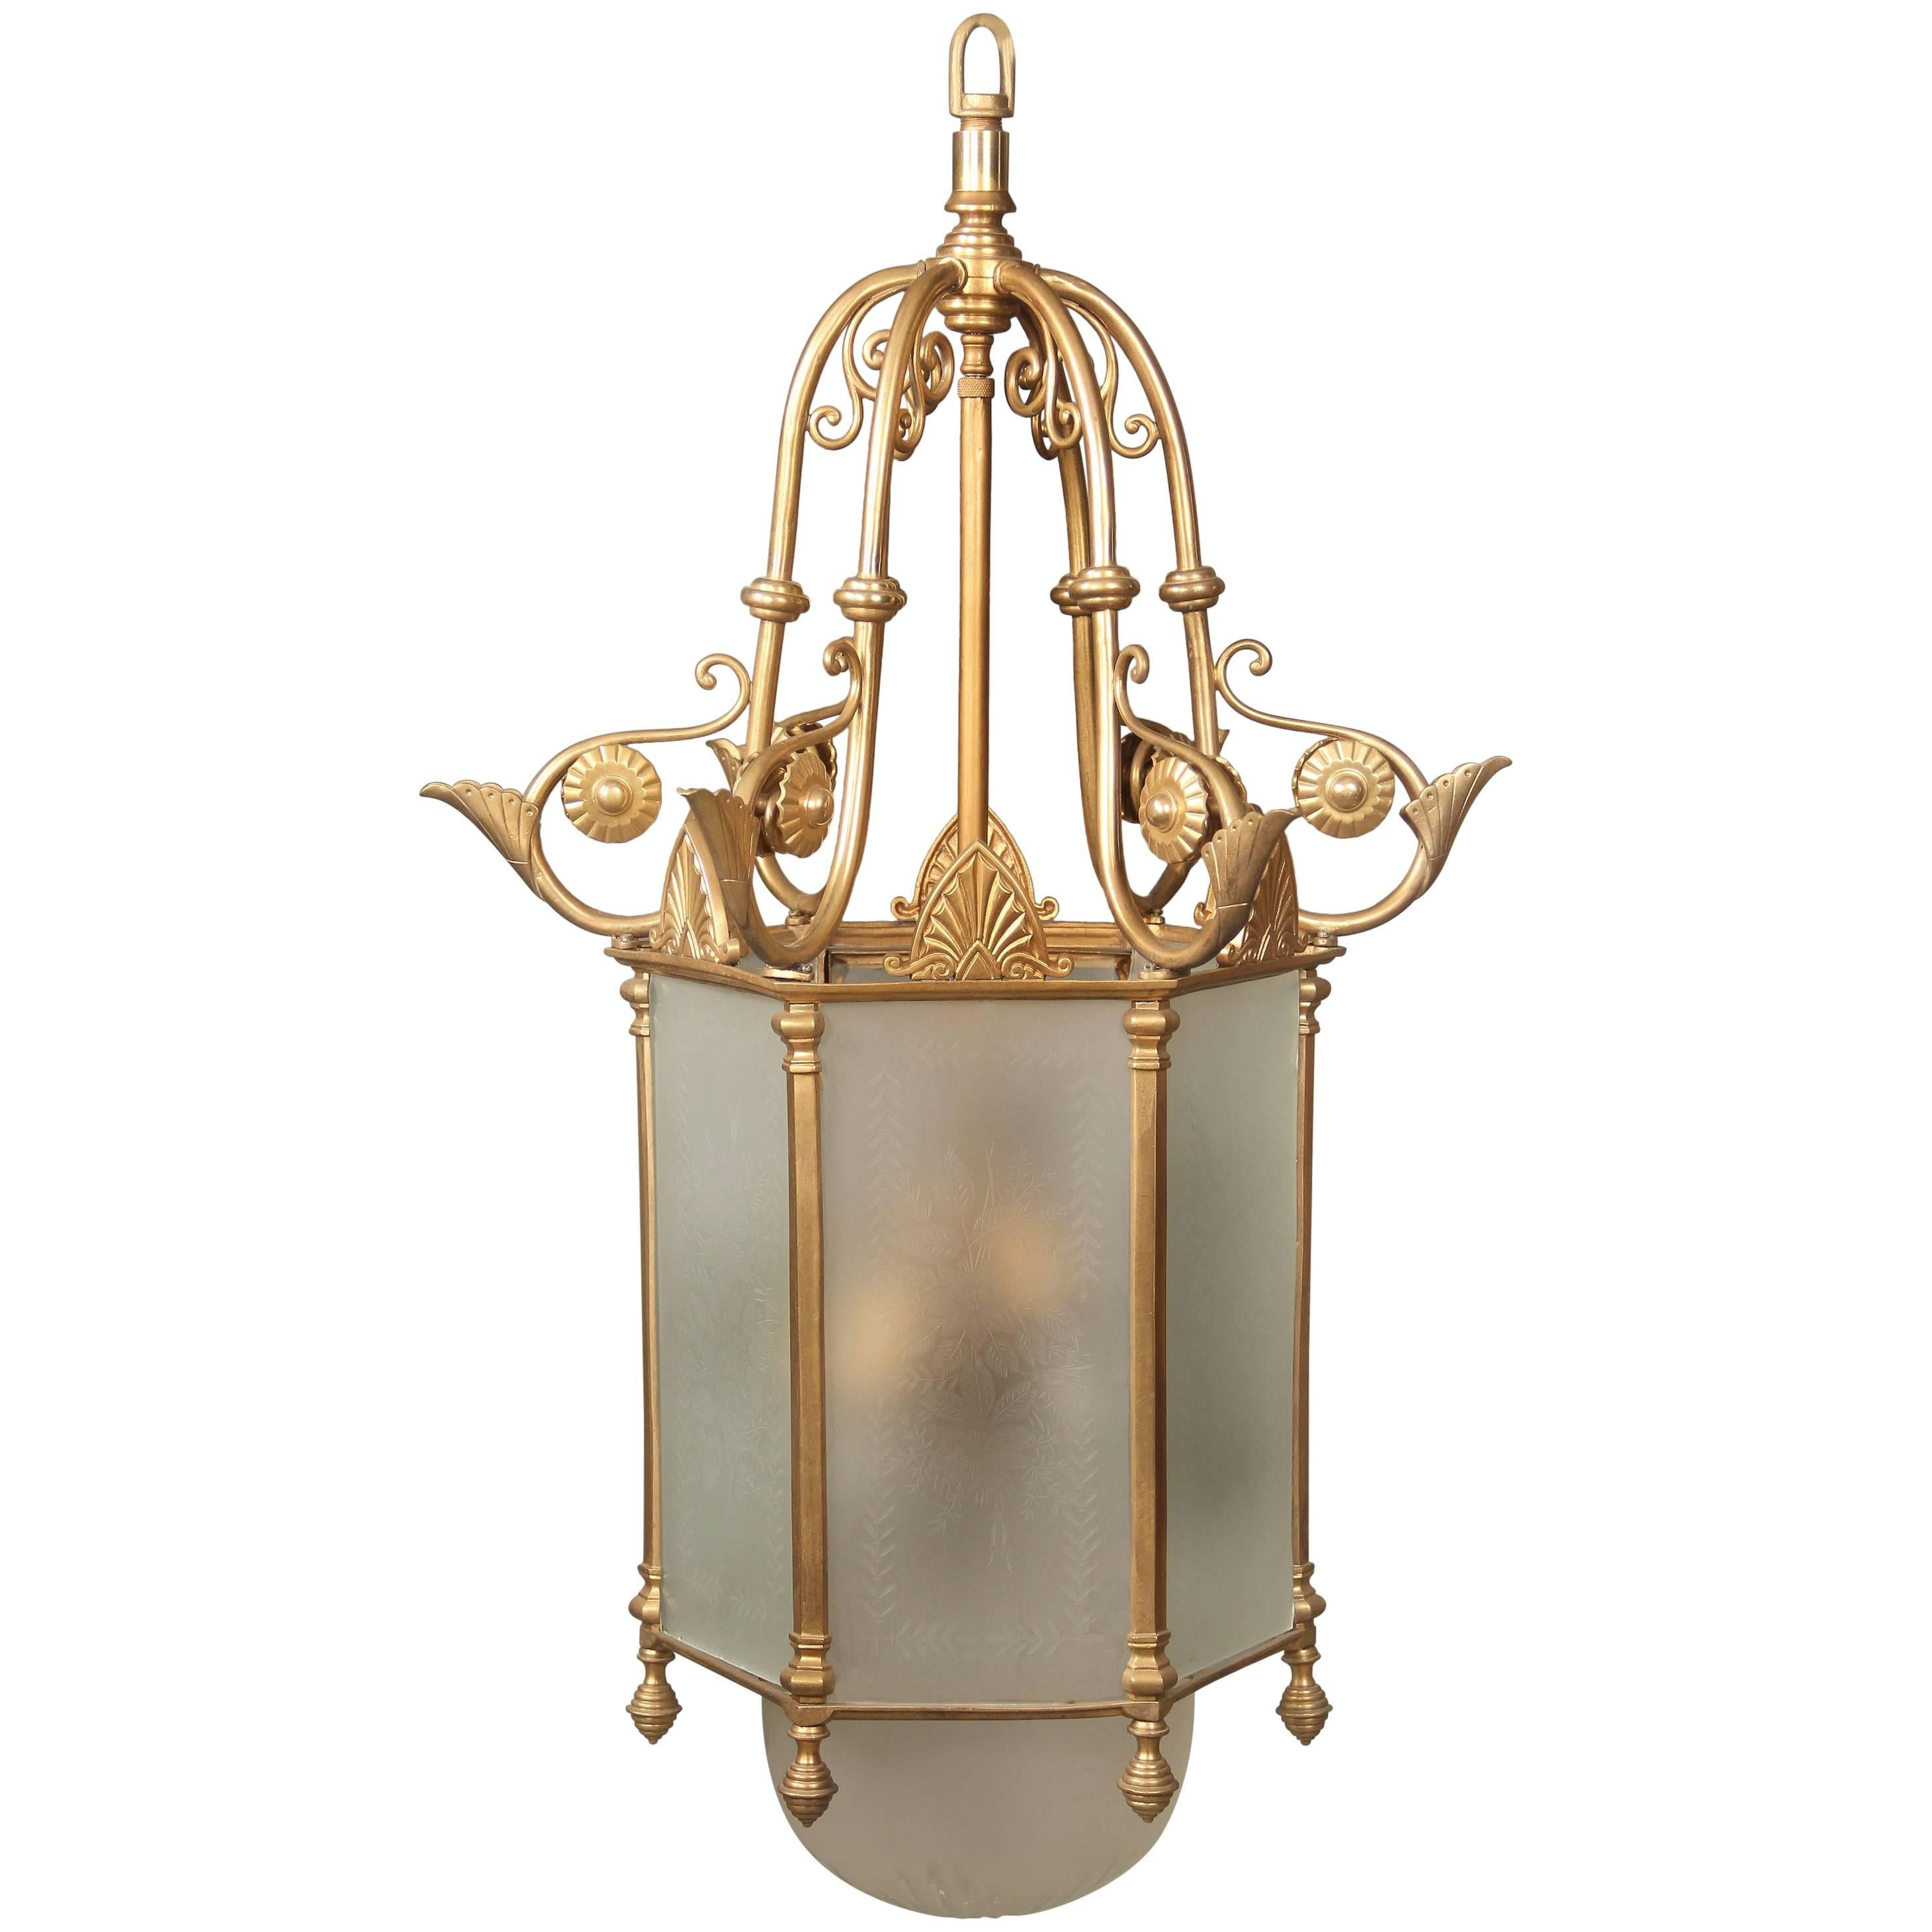 Early 20th Century Gilt Bronze and Etched Glass Lantern